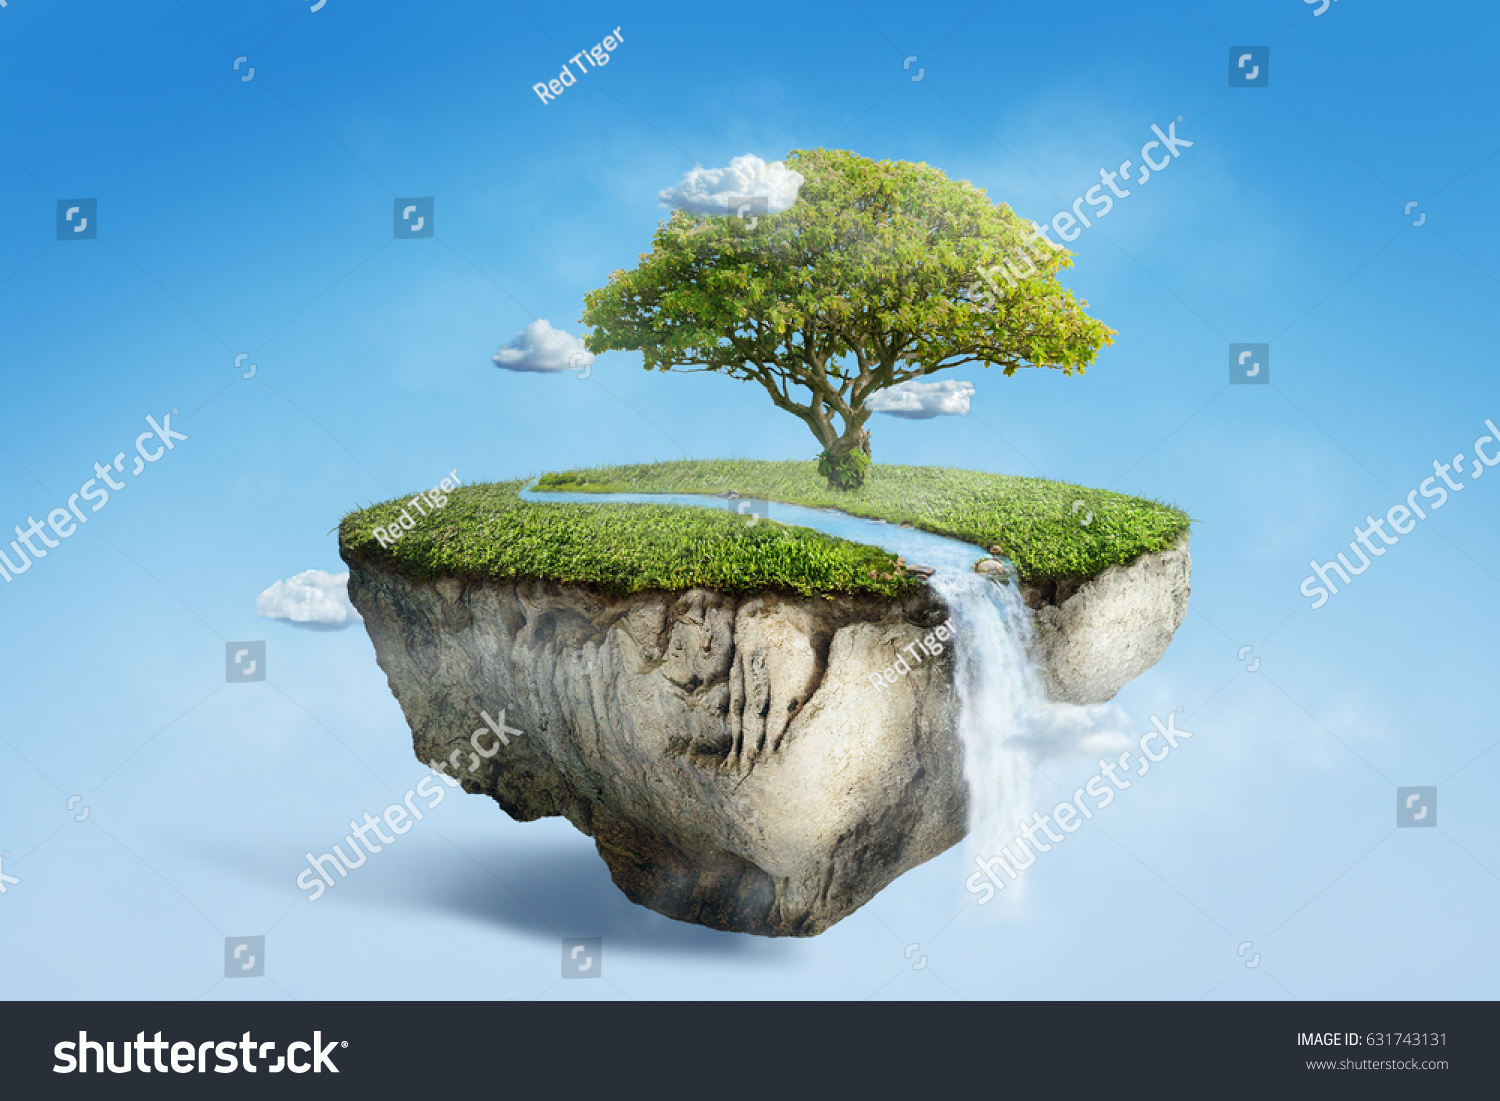 More similar stock images of 3d landscape with fall tree - Fantasy Floating Island With River Stream On Green Grass With Tree Surreal Float Landscape With